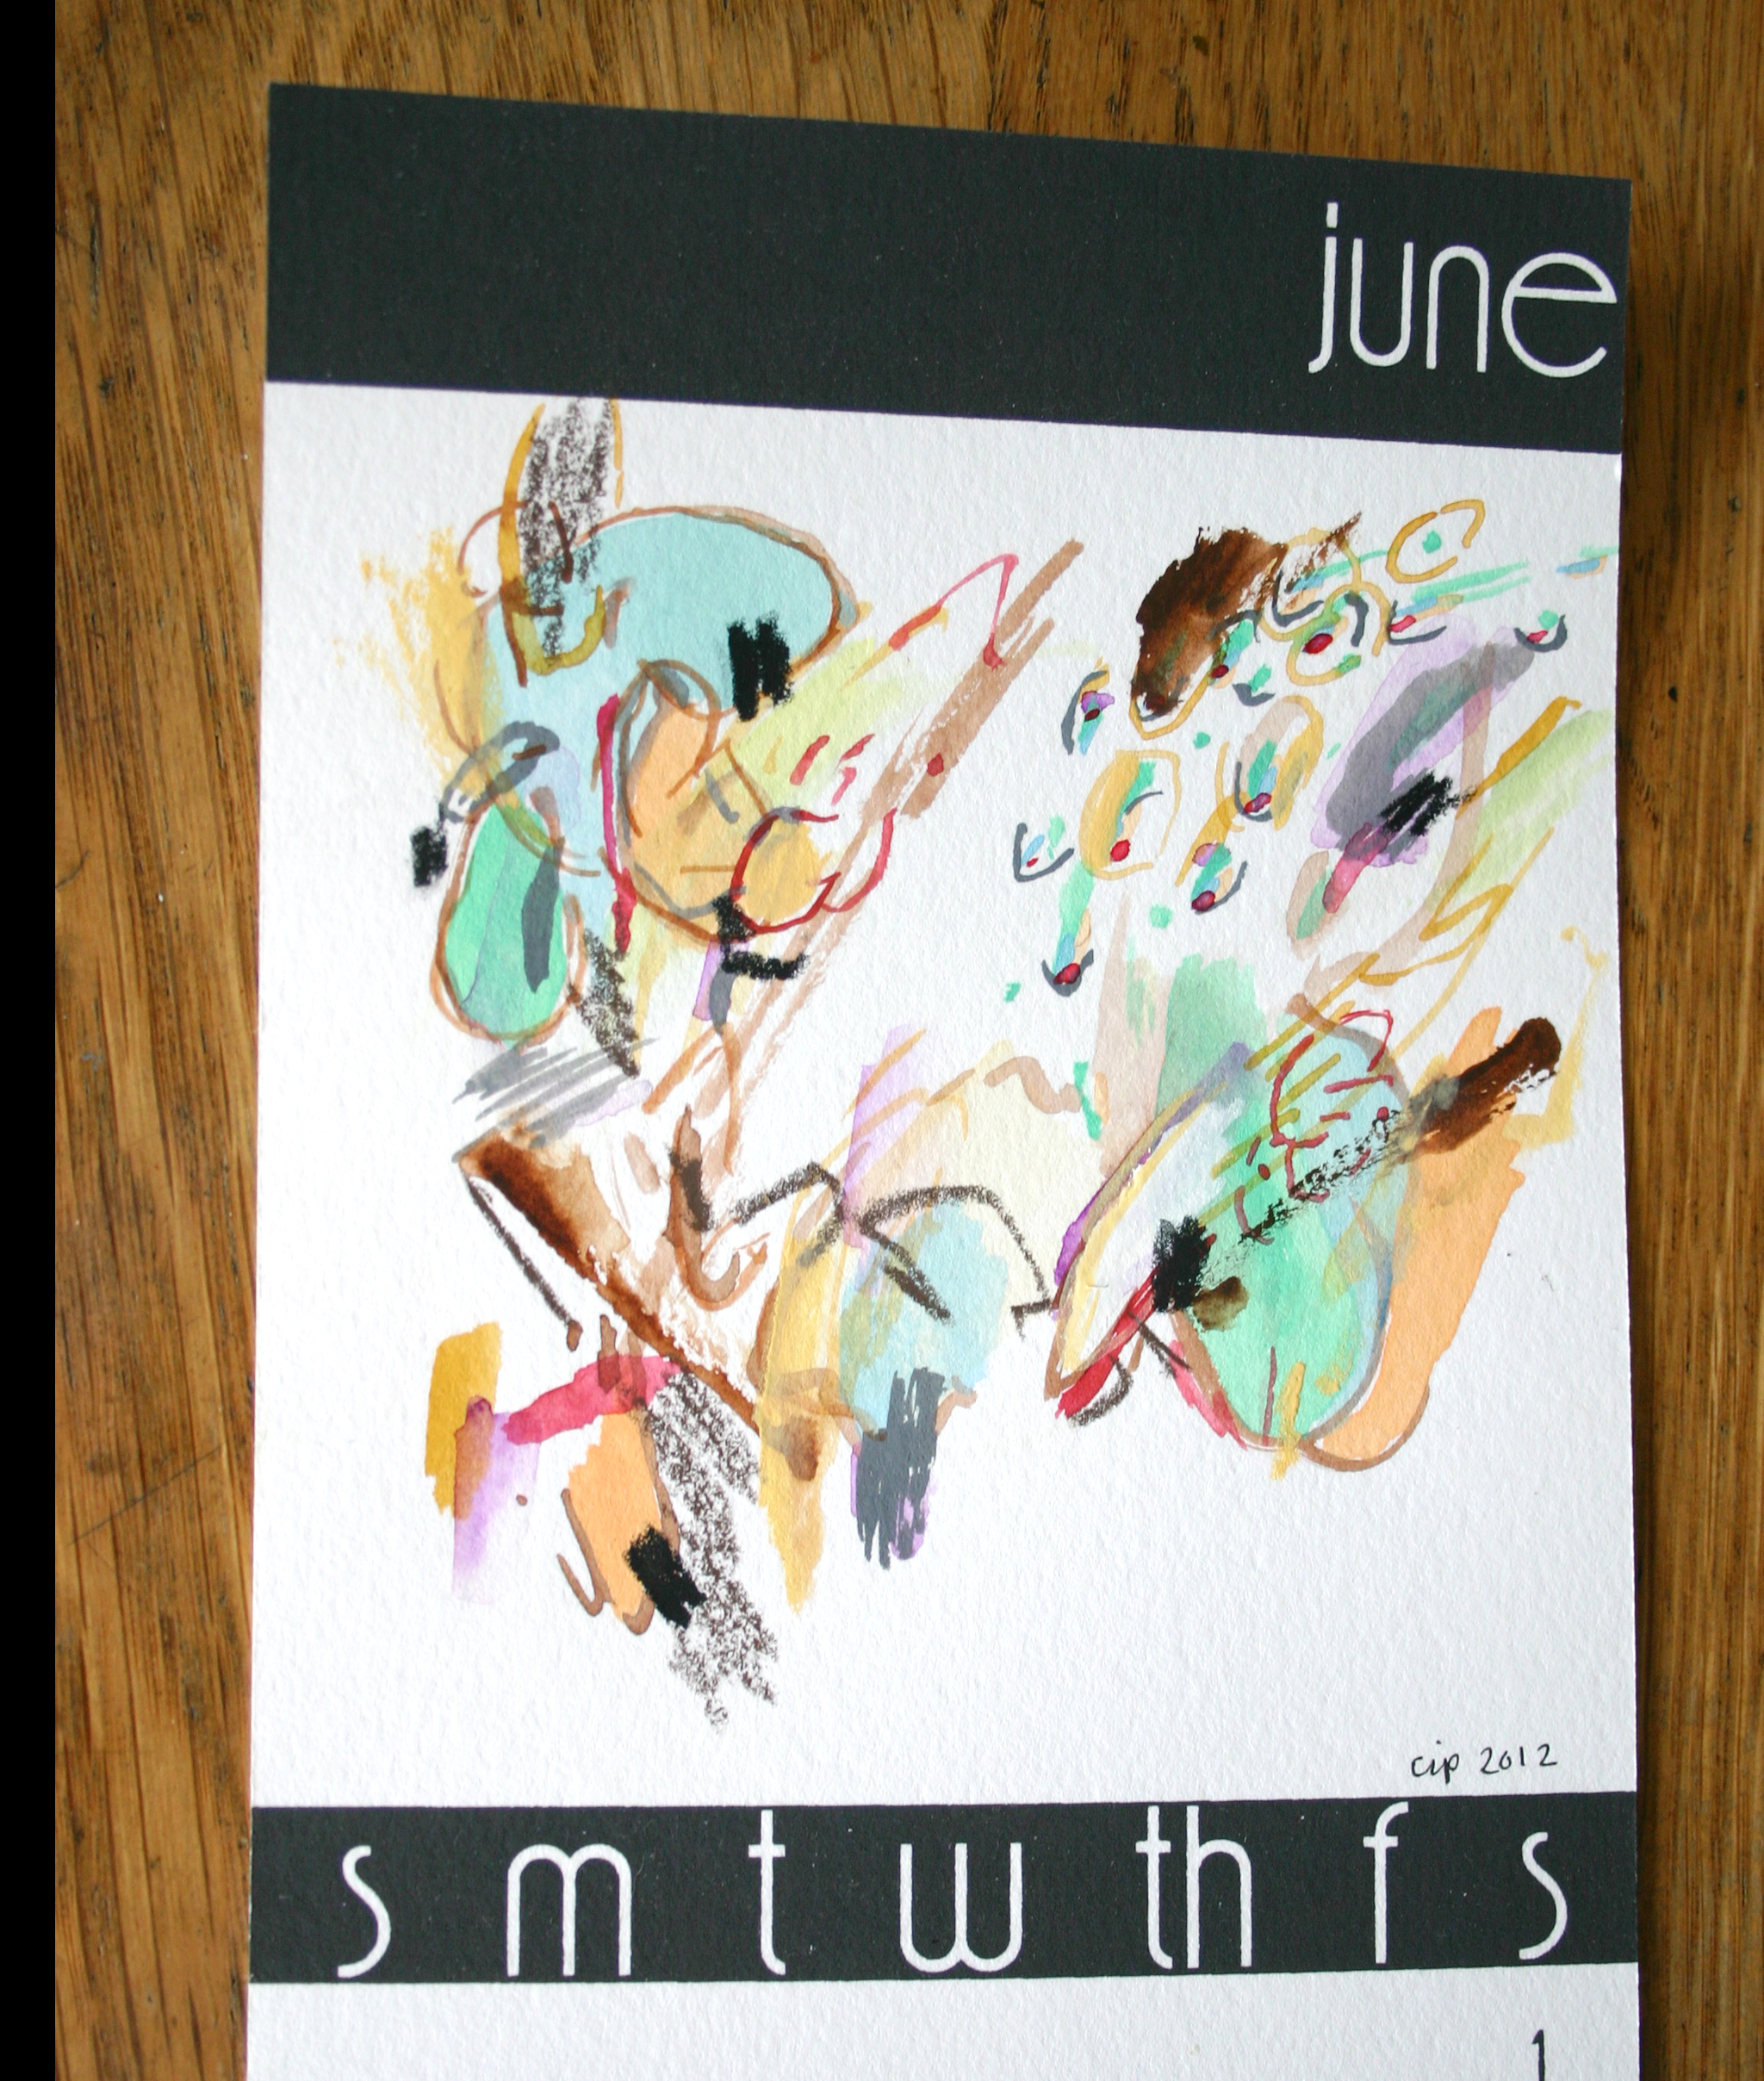 Abstract, Painting, Chrissy Poitras, Calendar, June, Green, Pink